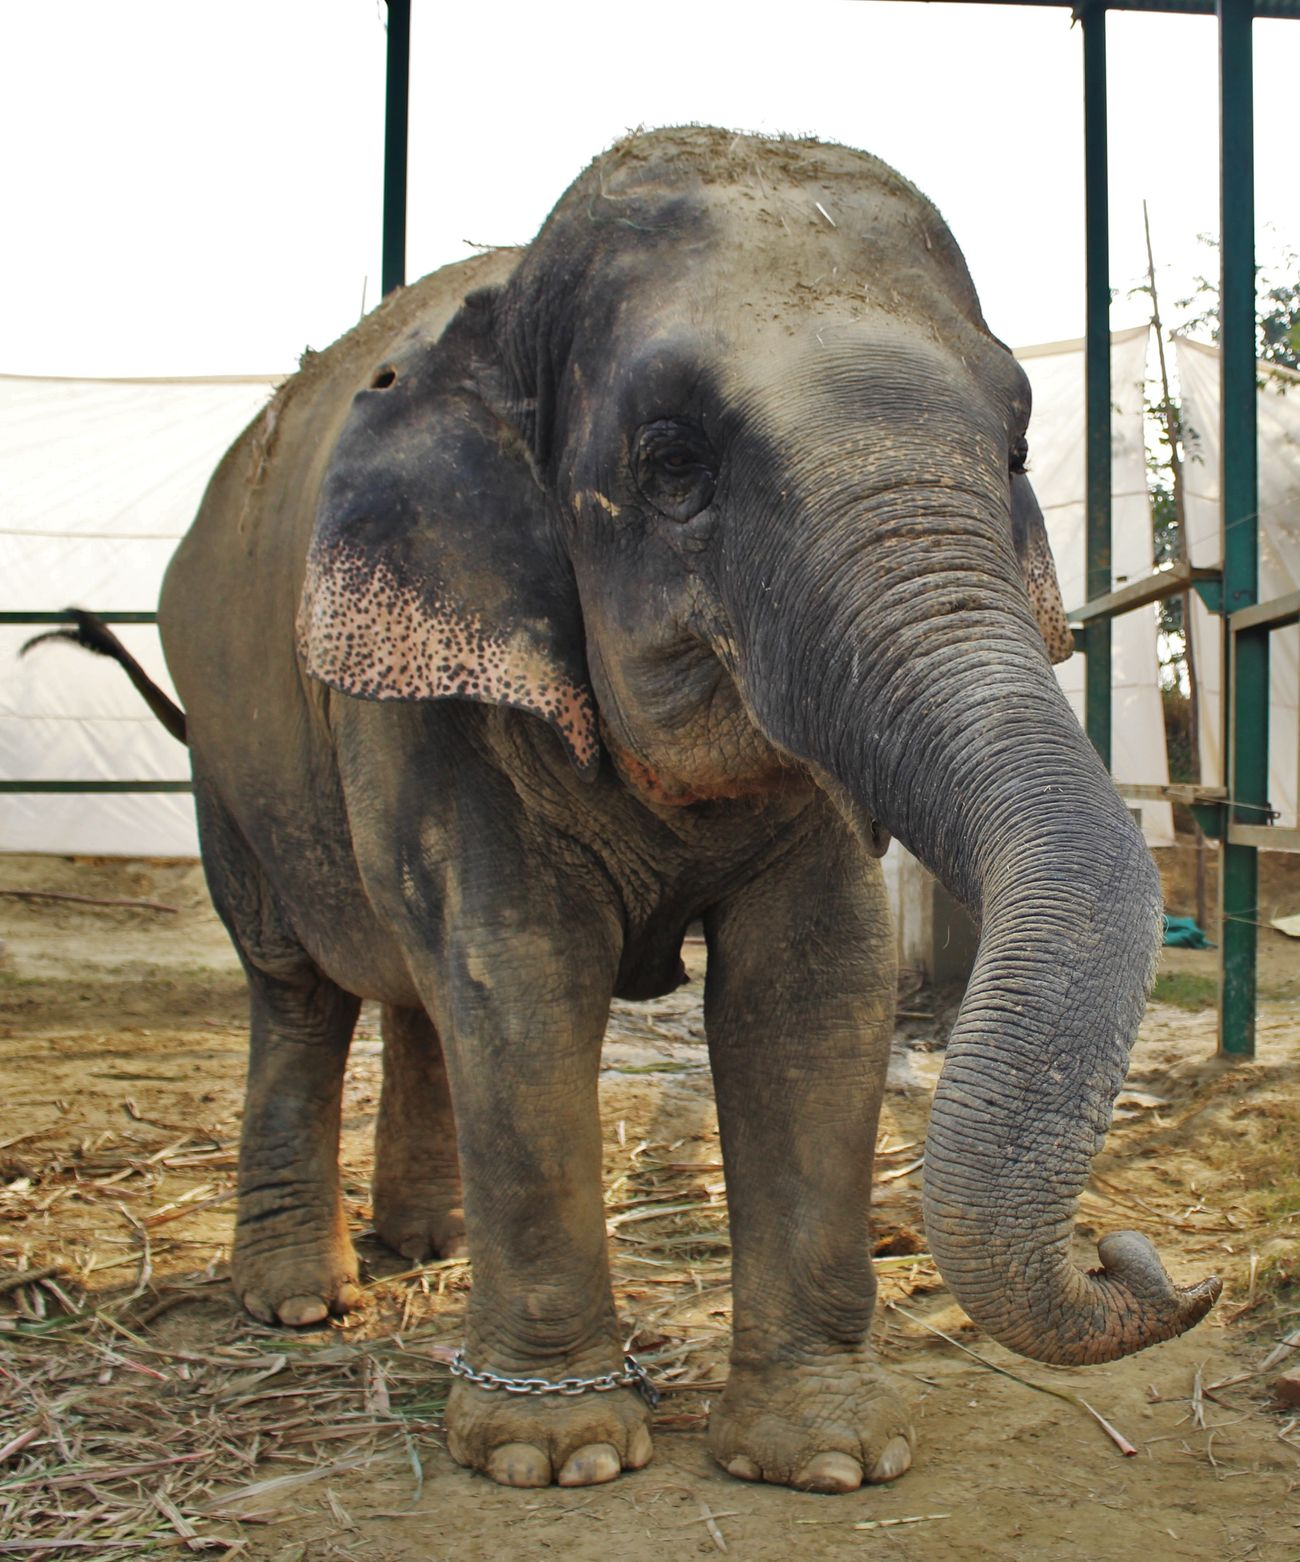 Animal Sanctuary Animal Themes Animal Trunk Animal Wildlife Animals In The Wild Day Elephant India Mammal Nature No People One Animal Outdoors Rescue Animals Sky